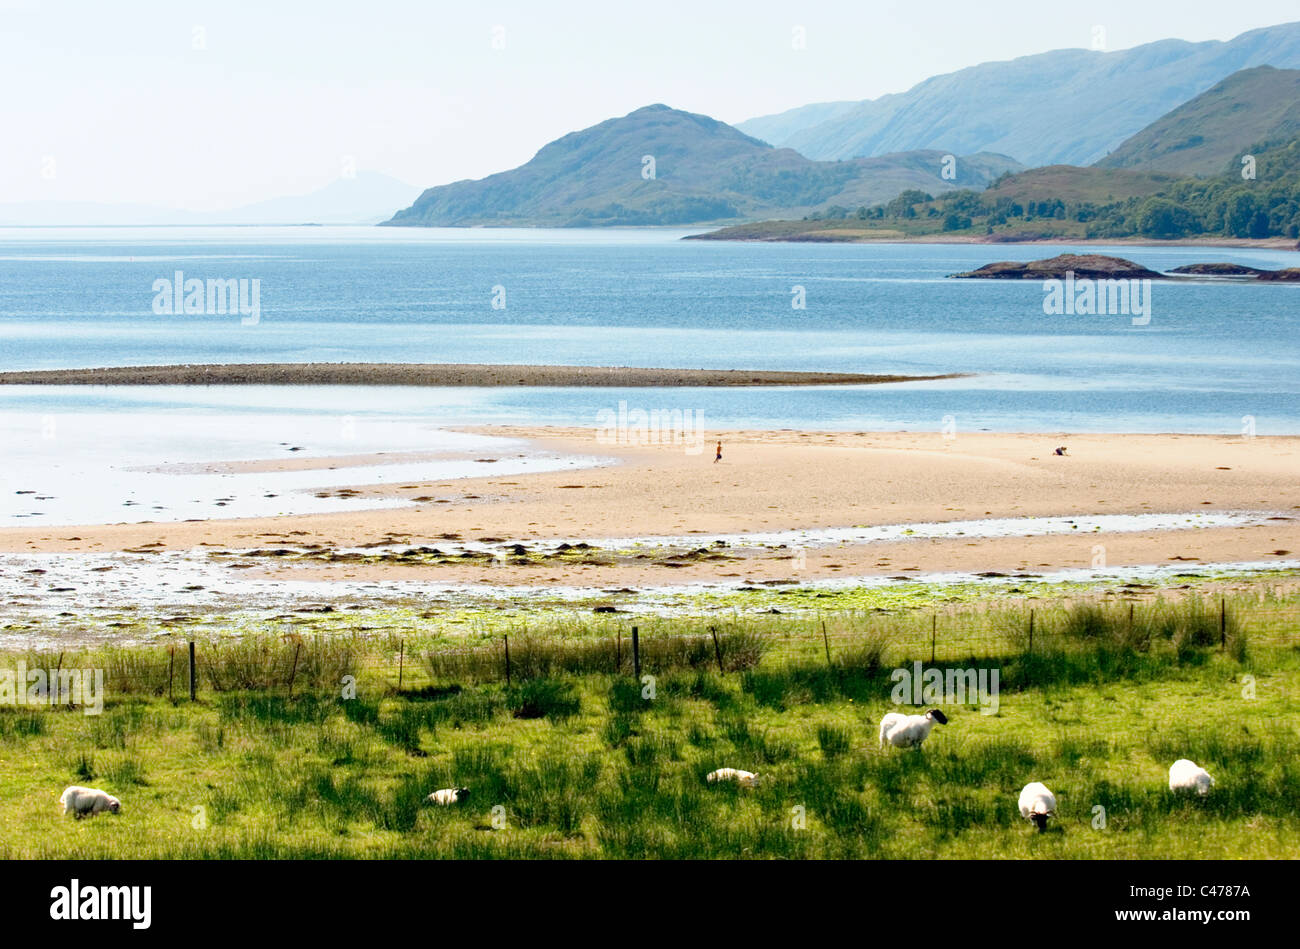 Southwest down the west shore of Loch Linnhe on the west coast of Scotland, UK. From near Corran and Sallachan Point - Stock Image